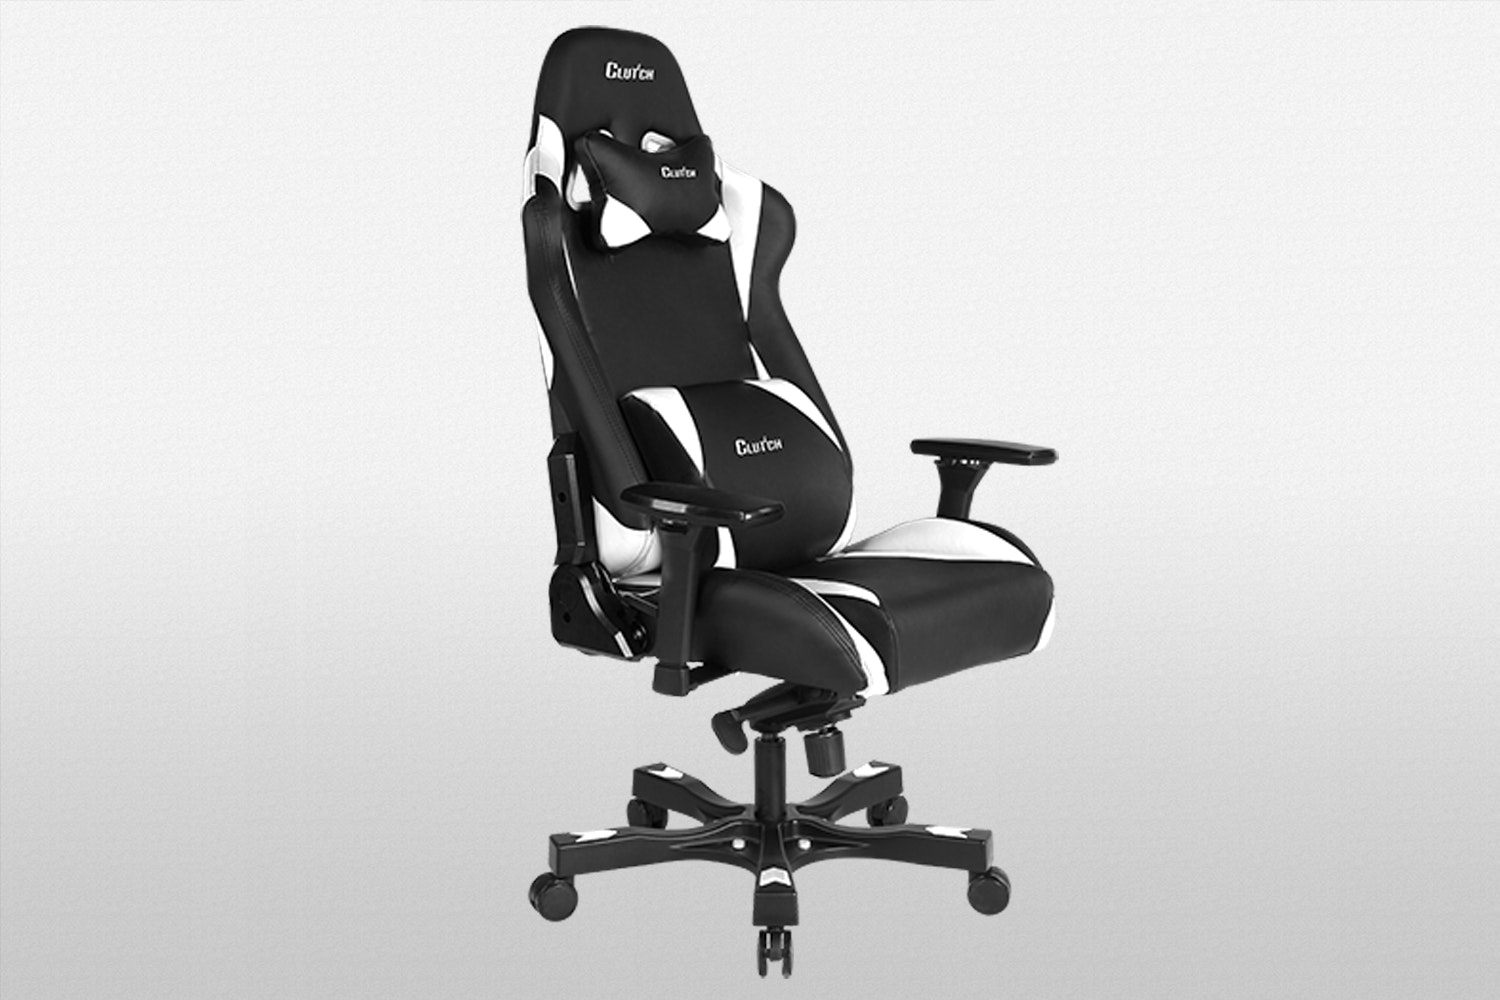 Clutch Throttle Series Chairs - Canada Only